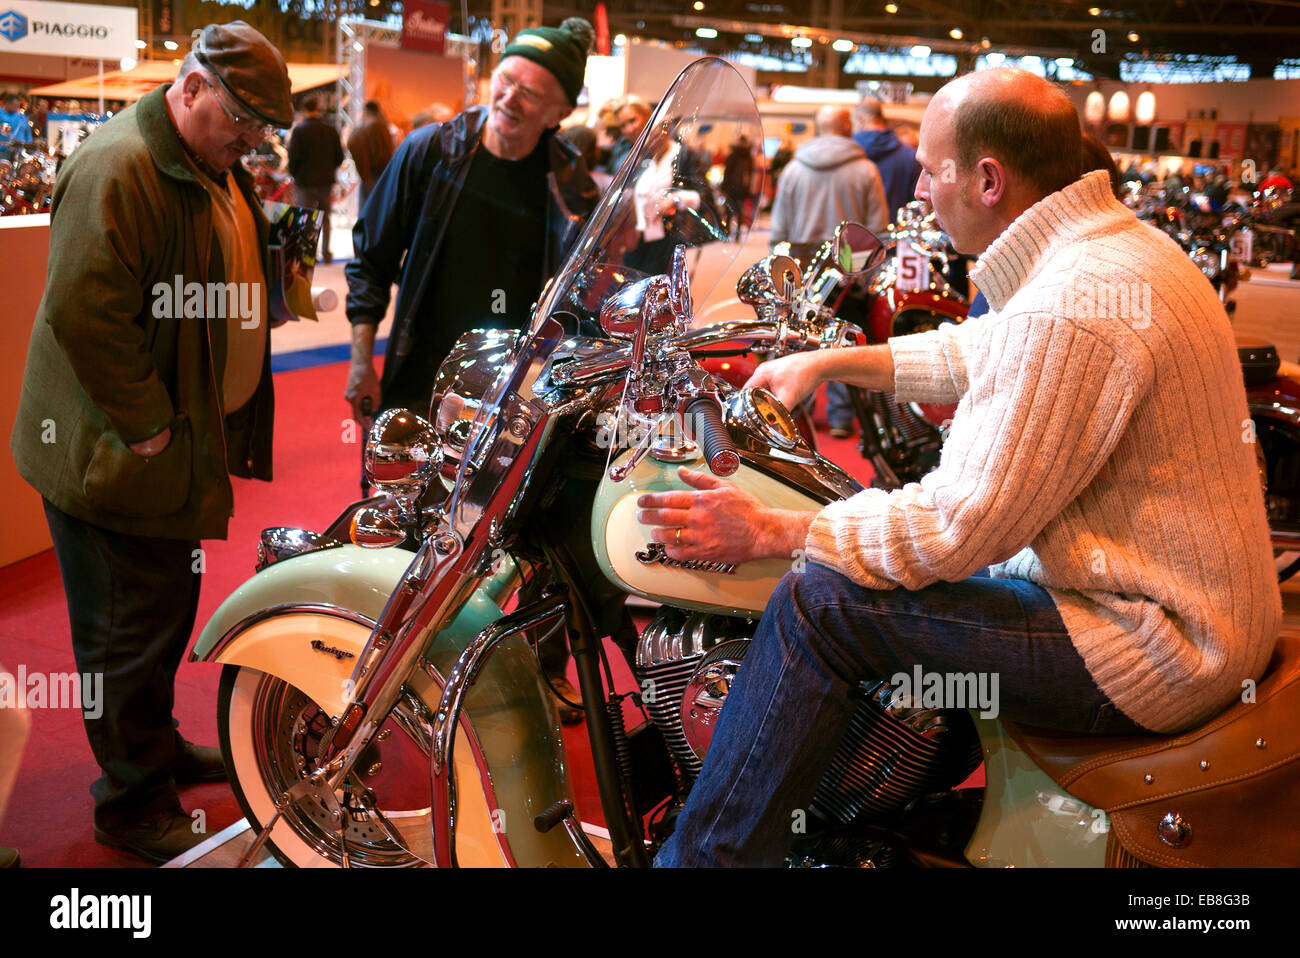 Visitors to the Motorcycle Live show at Birmingham's NEC, take a look at an Indian motorcycle. - Stock Image